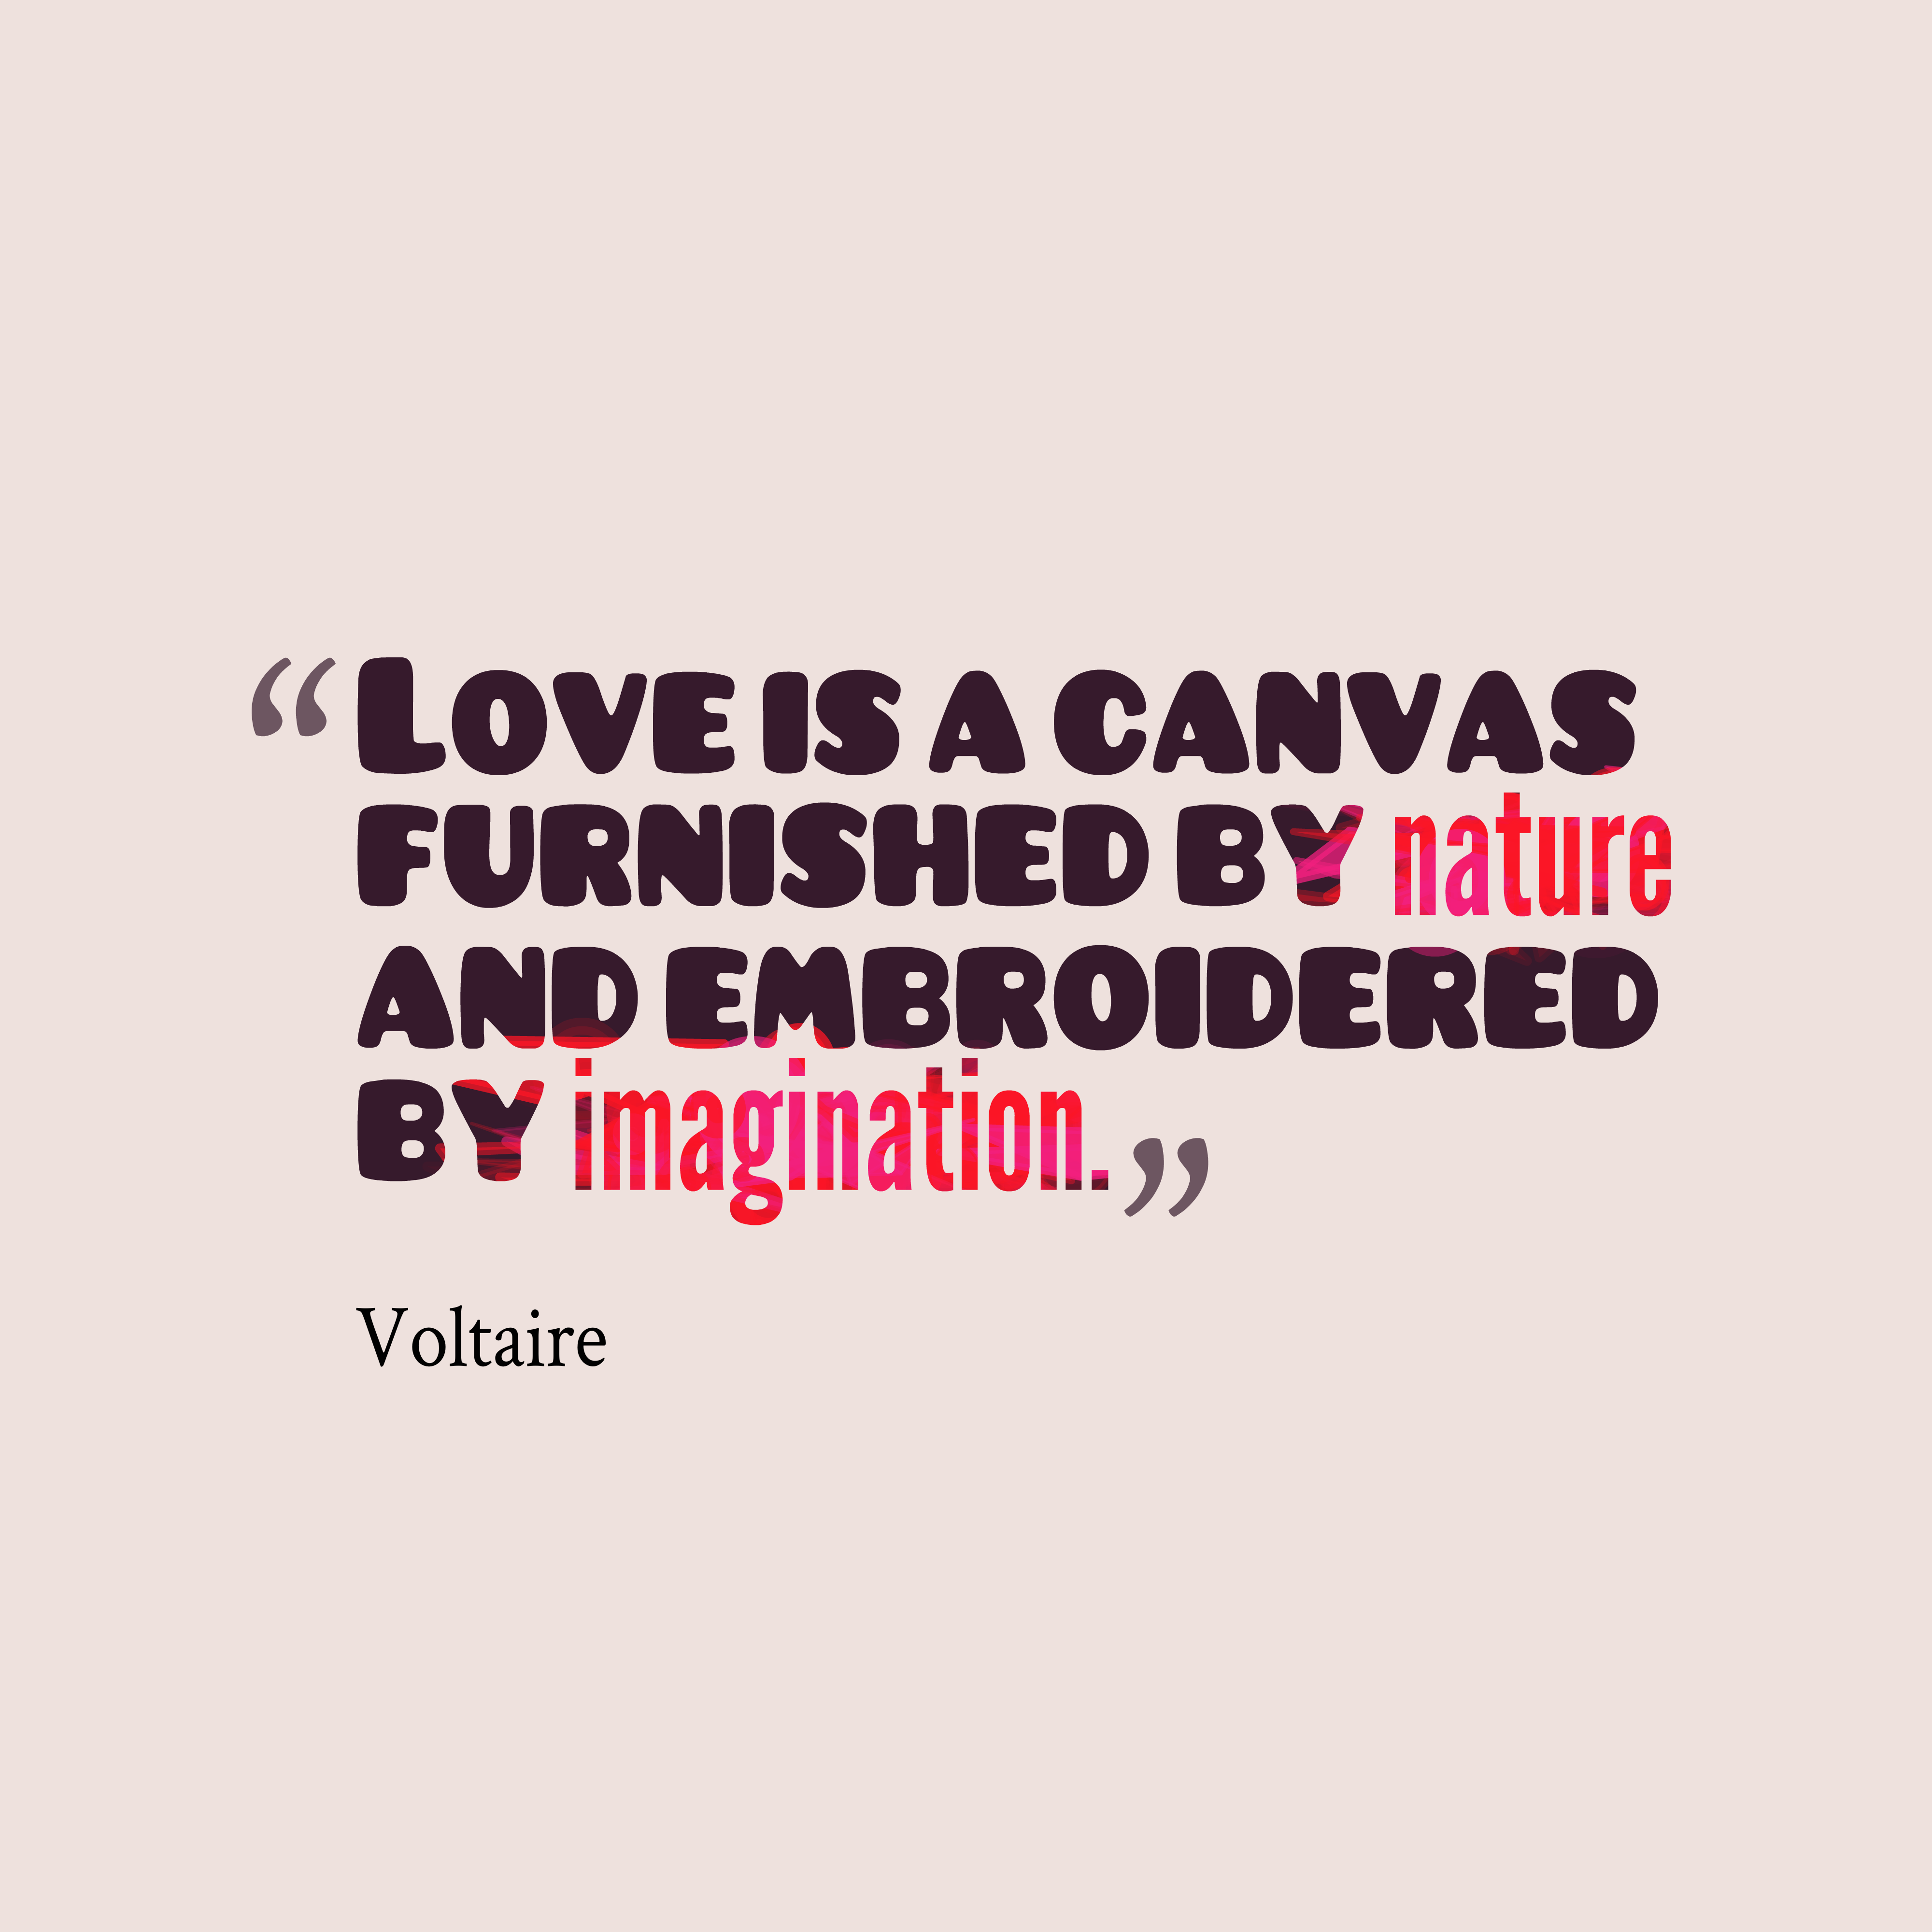 Voltaire quote about love